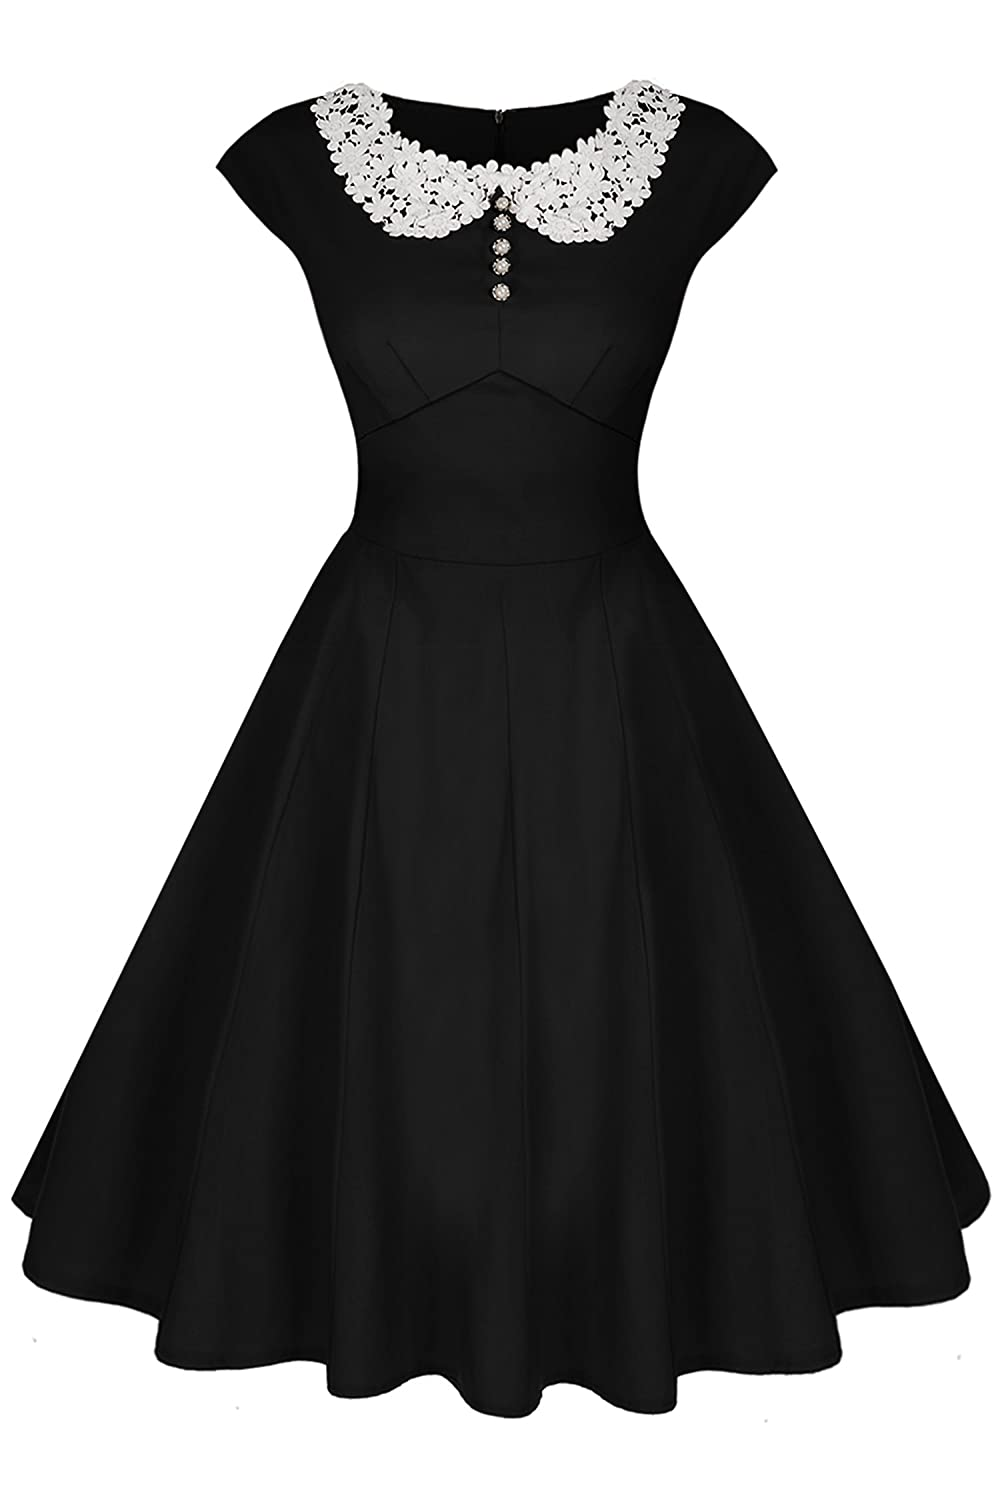 1960s Plus Size Dresses & Retro Mod Fashion Audrey Hepburn Style 1940s Rockabilly Evening Dress  AT vintagedancer.com